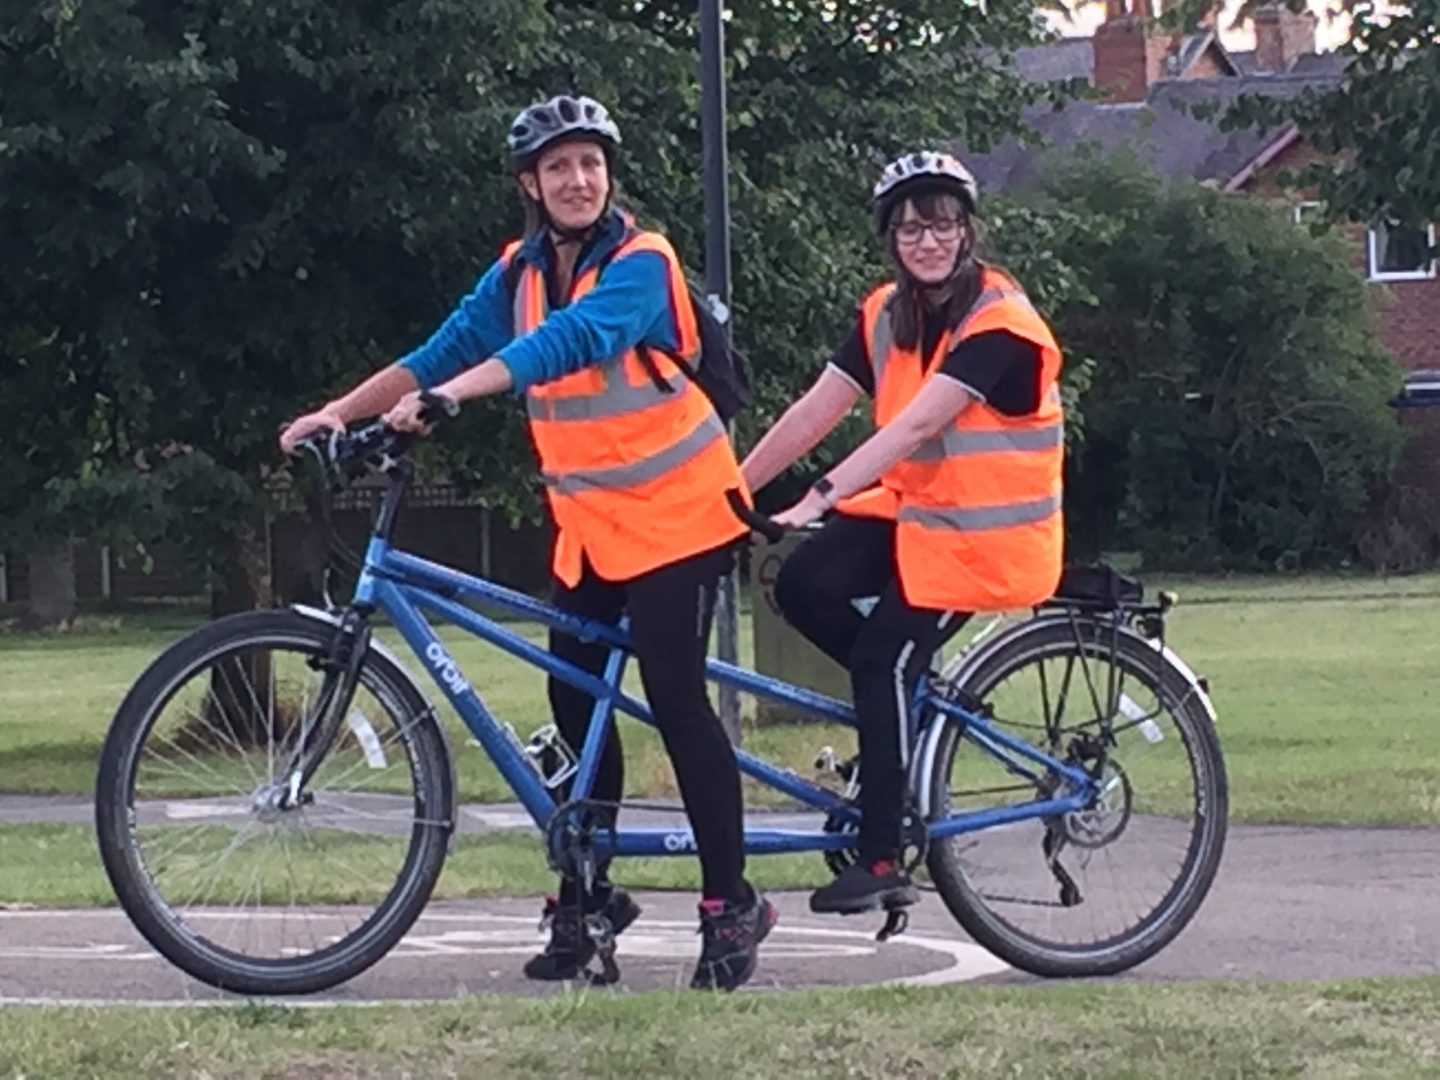 Holly and her friend on a tandem